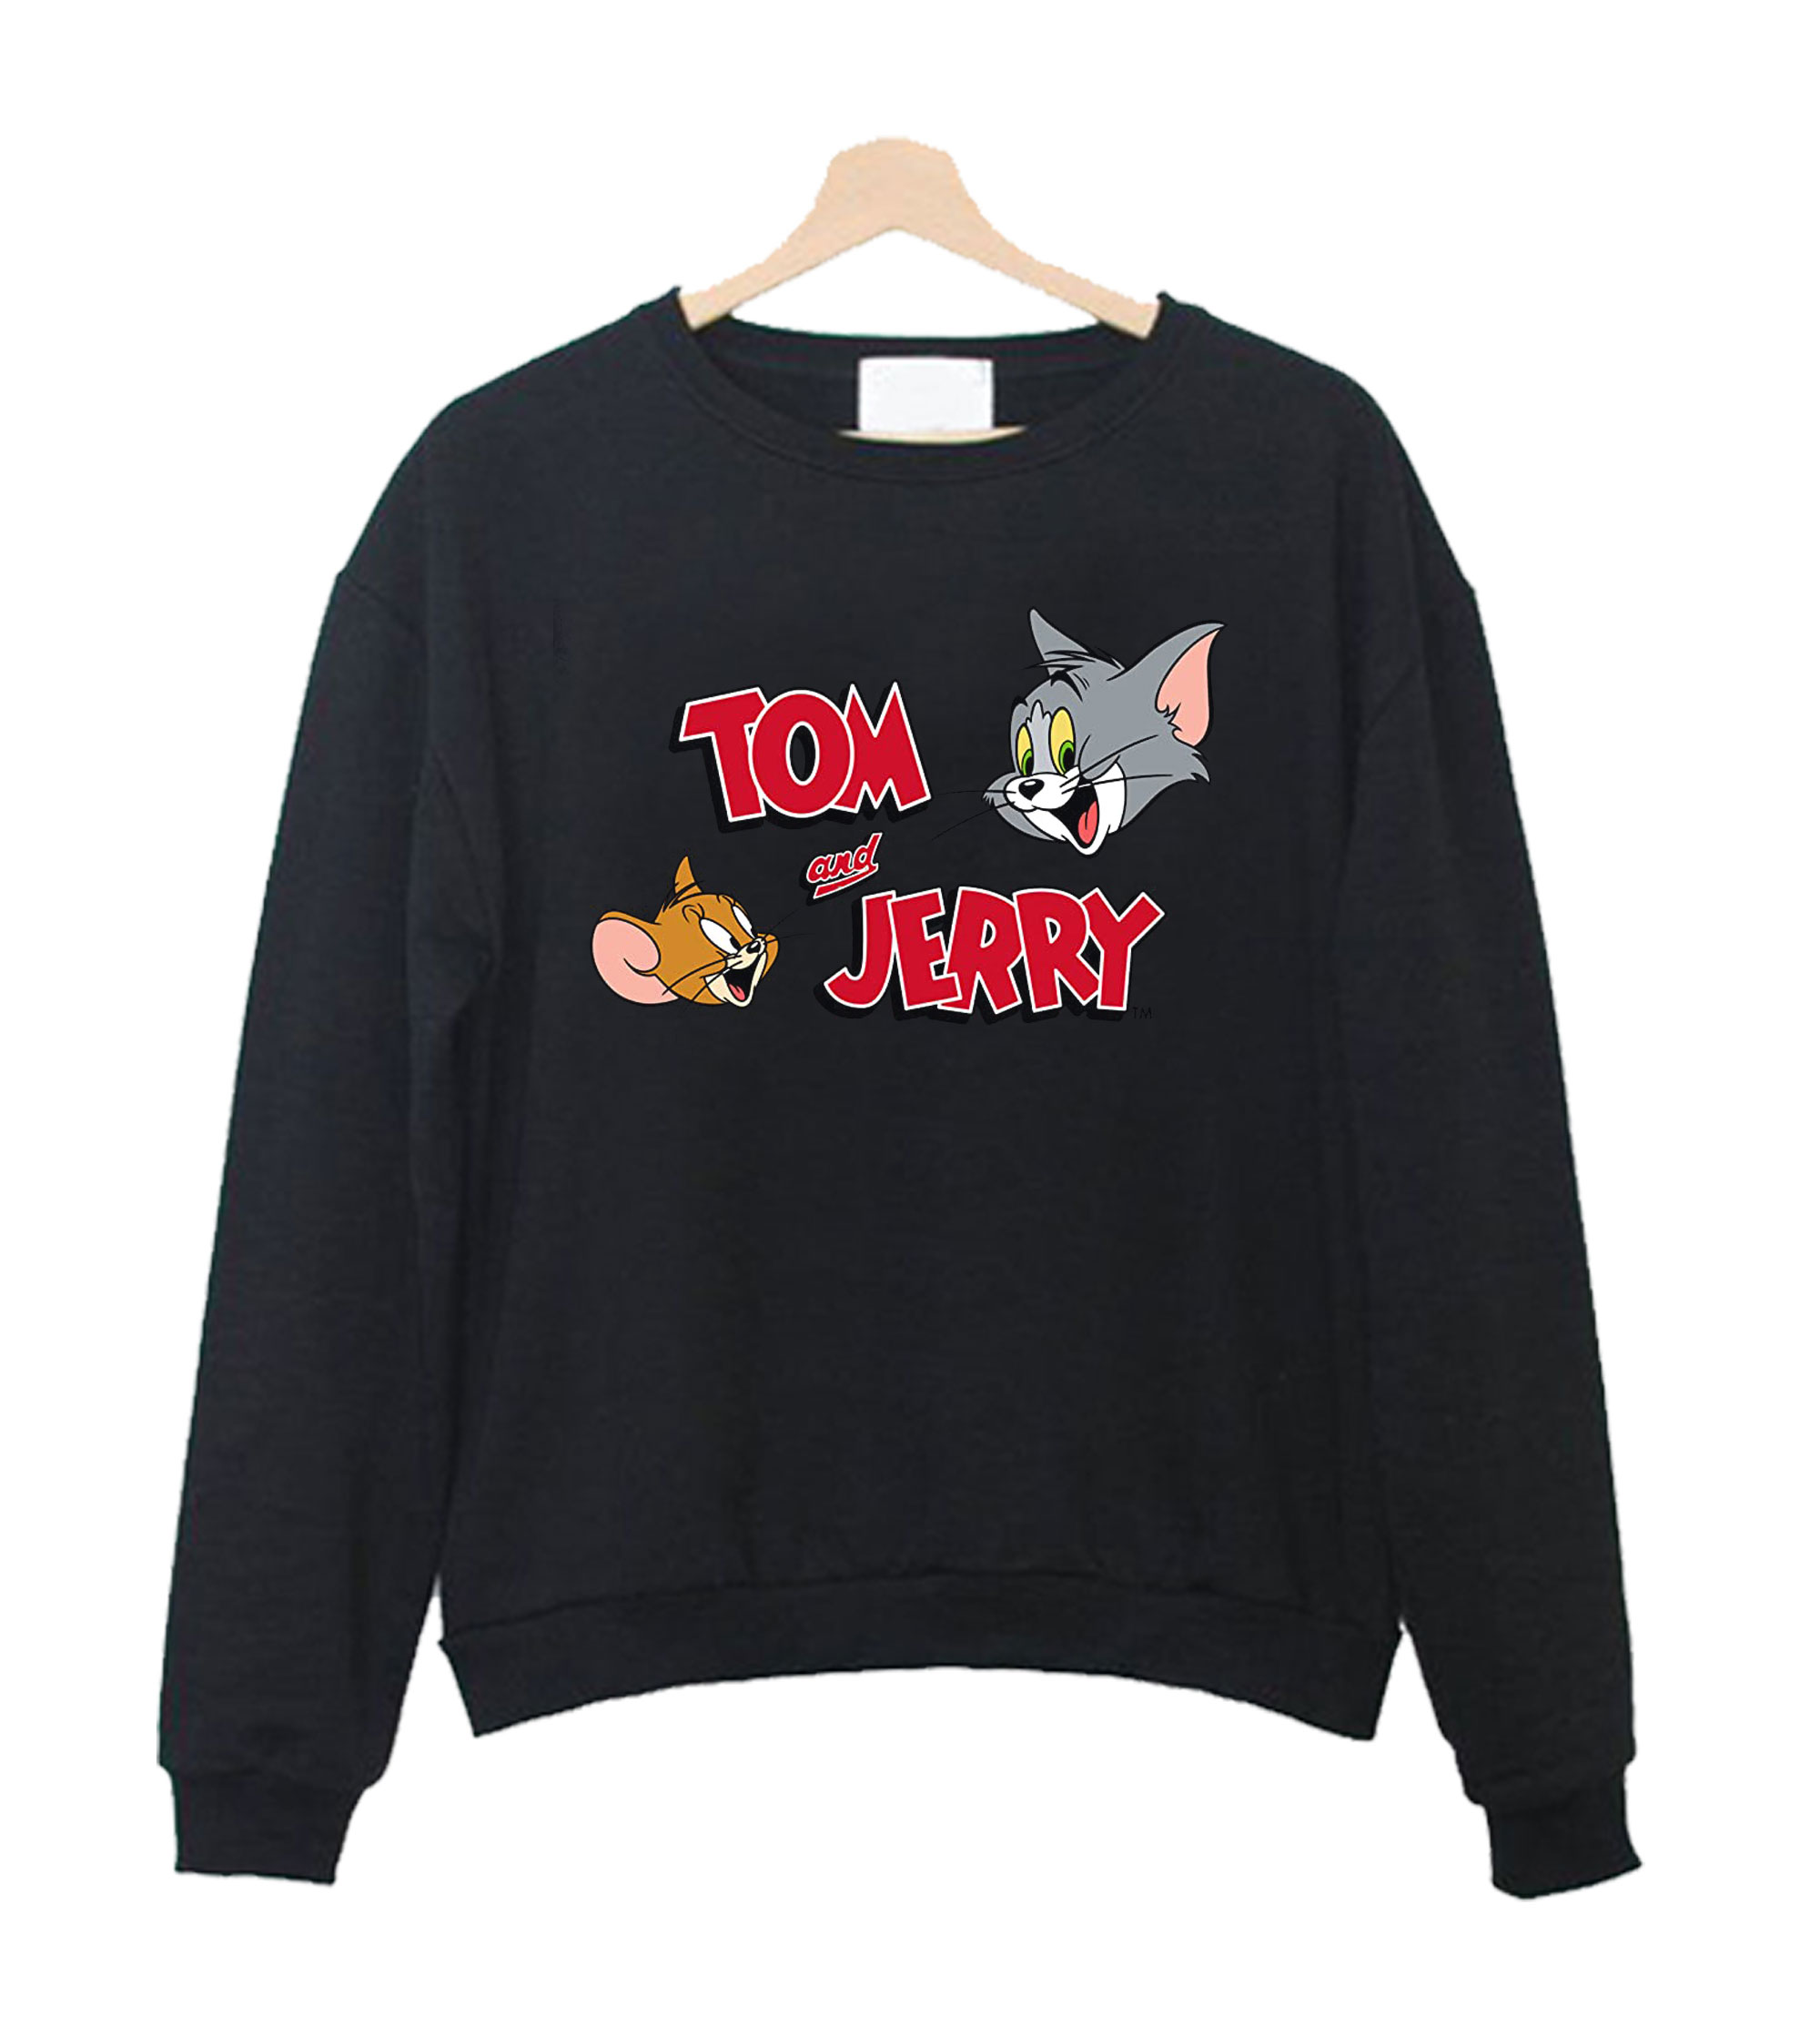 Tom and Jerry Graphic Sweatshirt